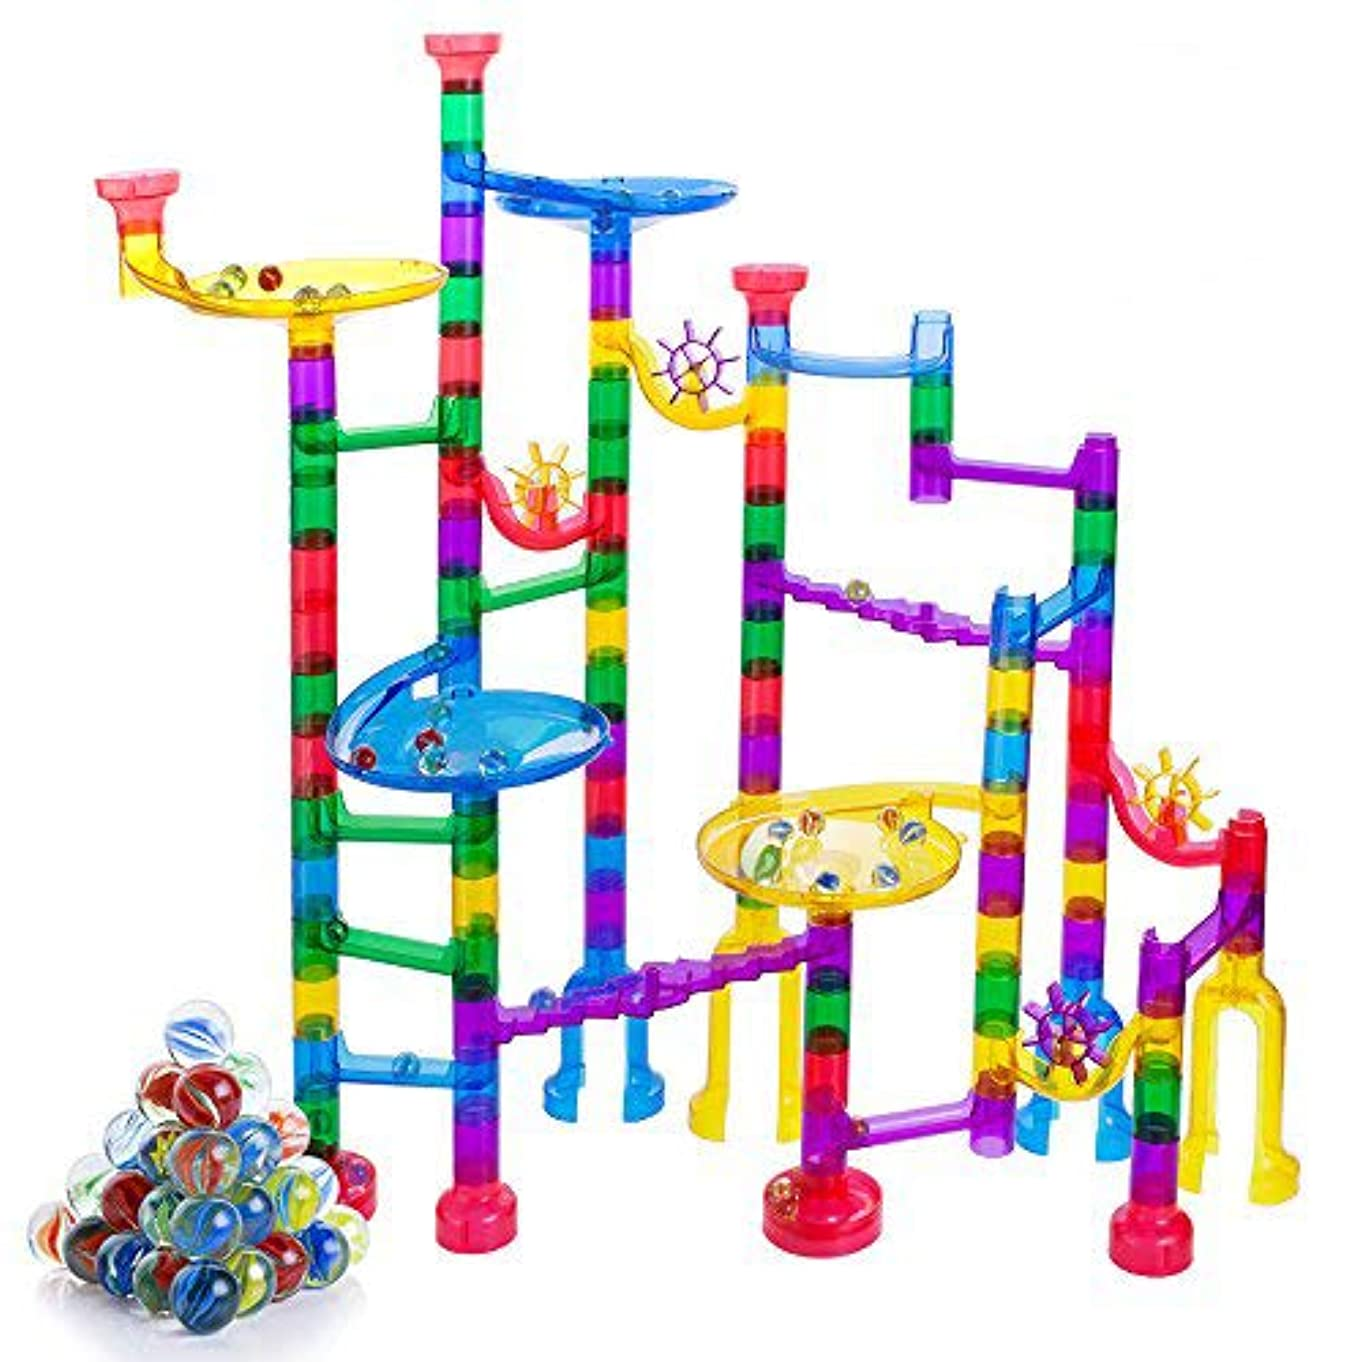 Gifts2U Marble Run Sets Kids, 122 PCS Marble Race Track Game 90 Translucent Marbulous Pieces + 32 Glass Marbles, STEM Marble Maze Building Blocks Kids 4+ Year Old l87350784